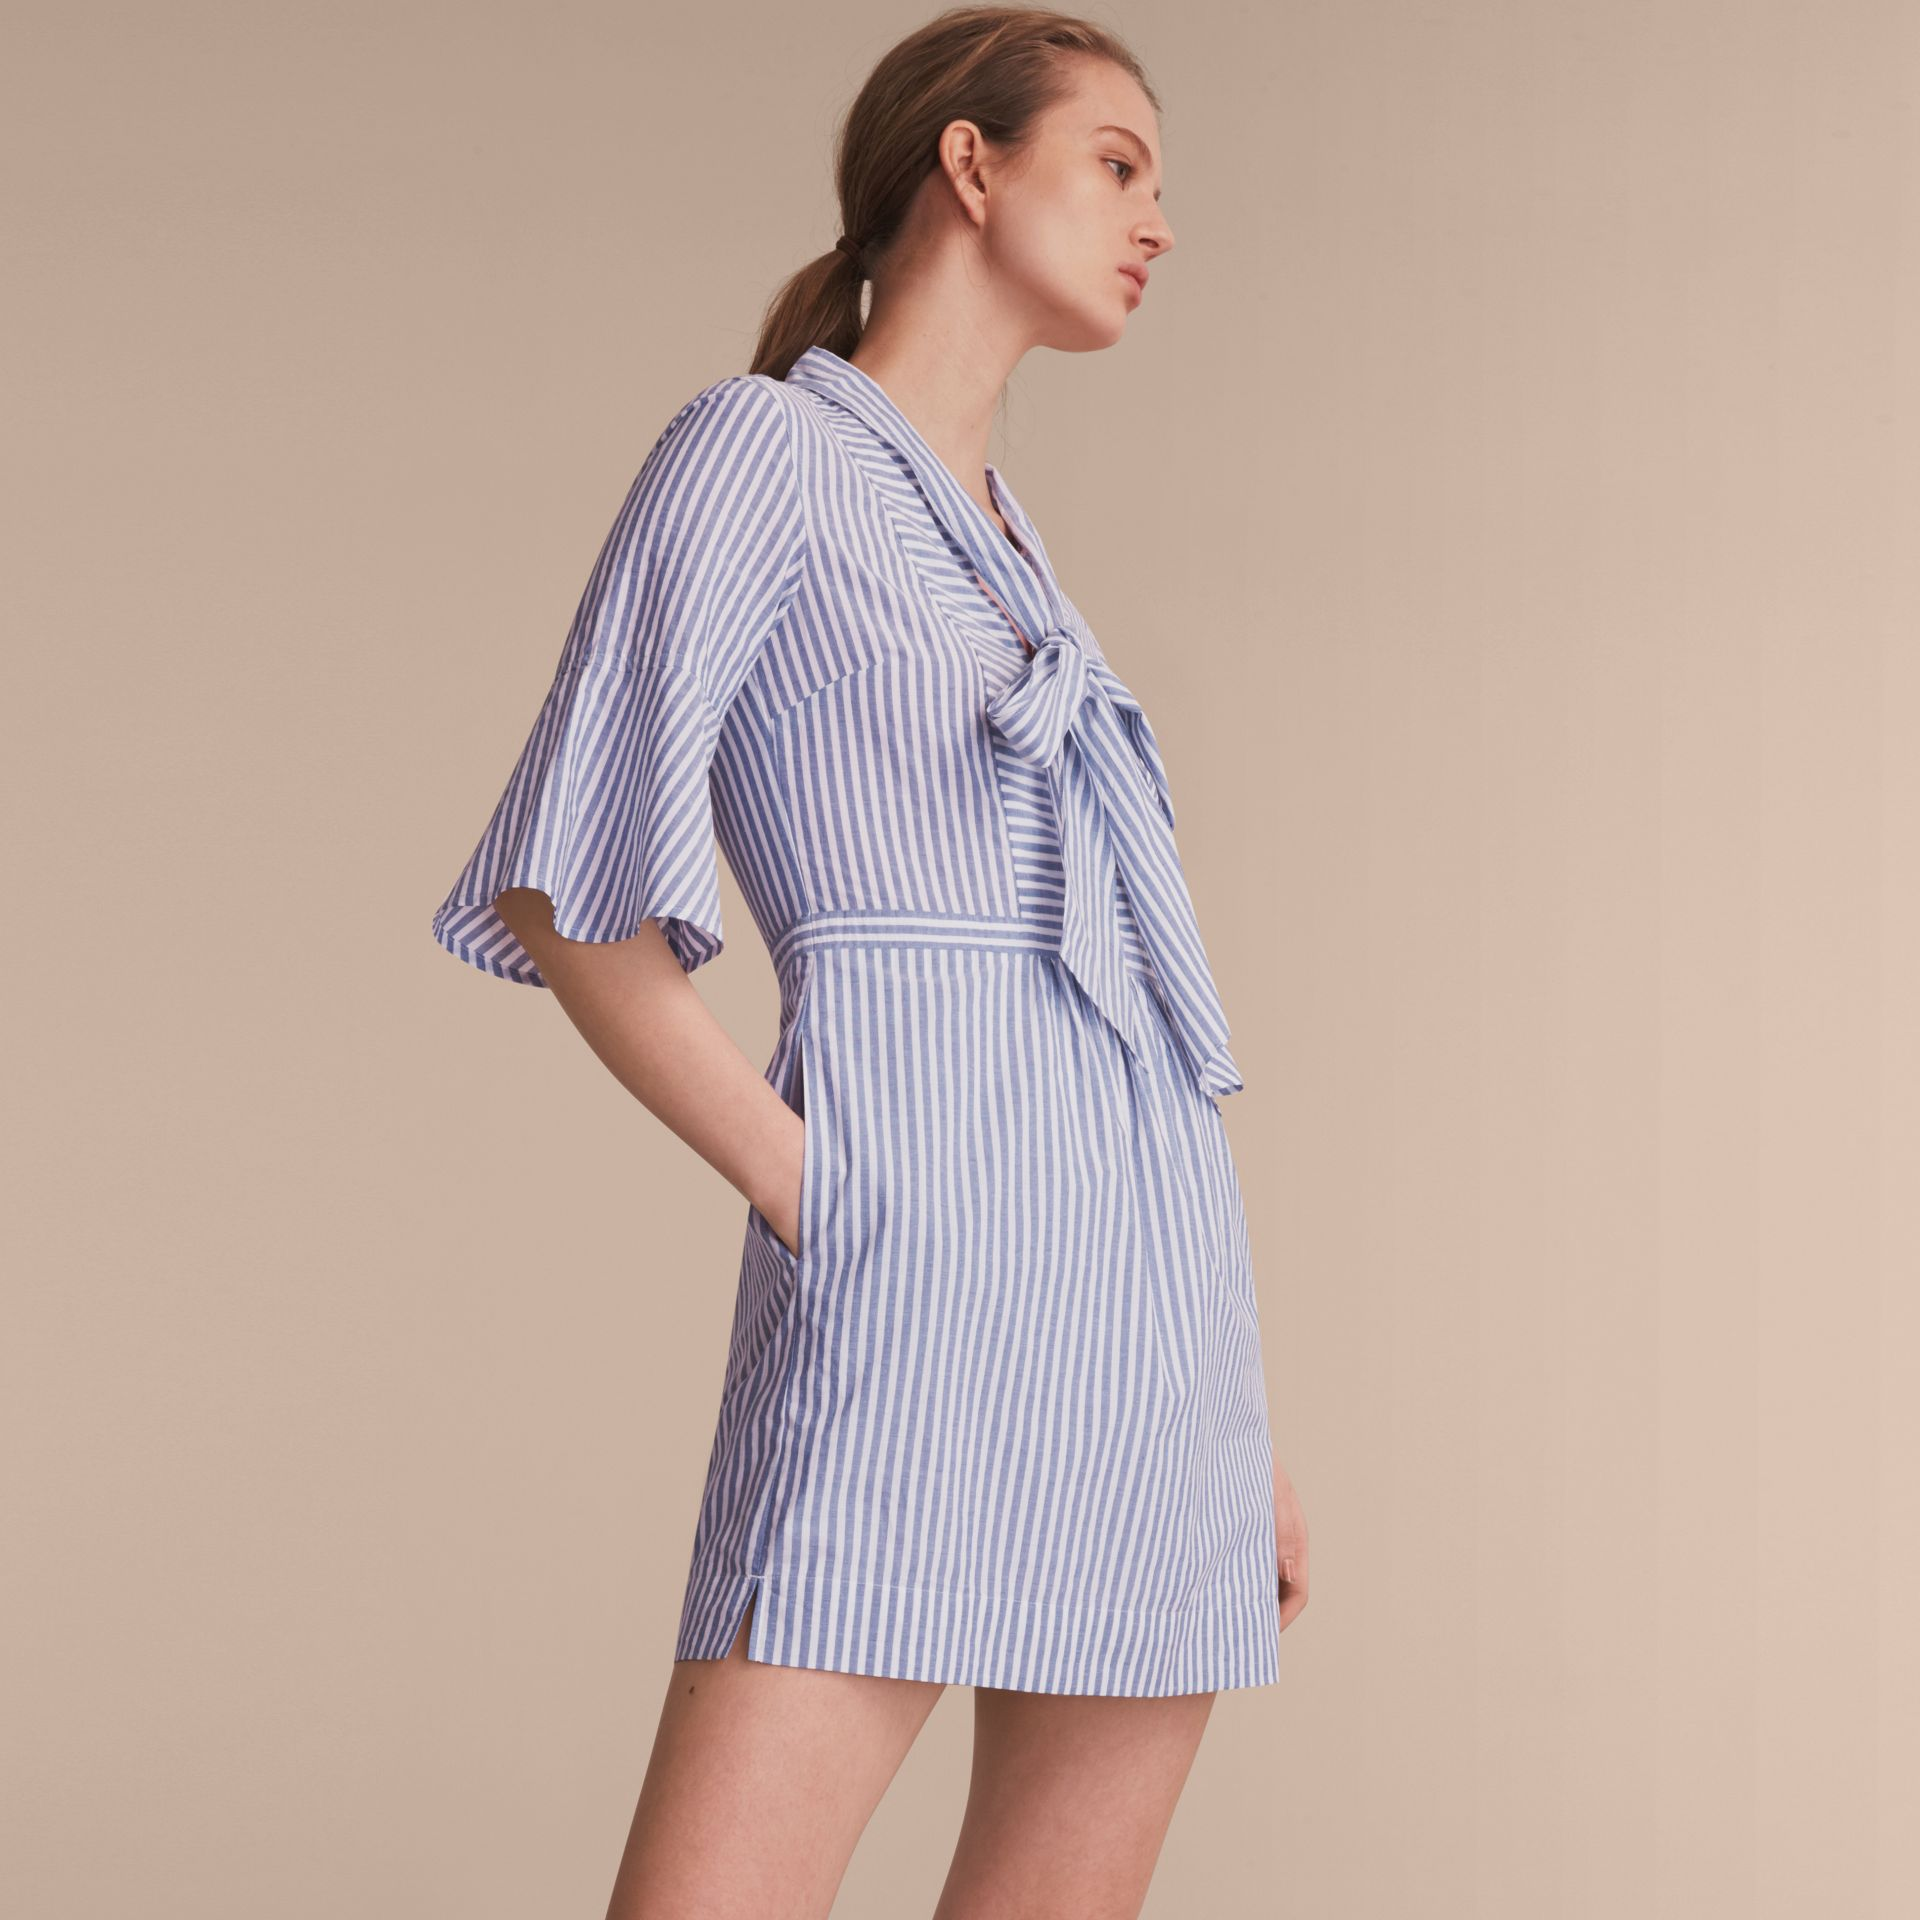 Bell-sleeve Striped Shirt Dress with Tie Neck in Pale Blue/white - Women | Burberry - gallery image 5